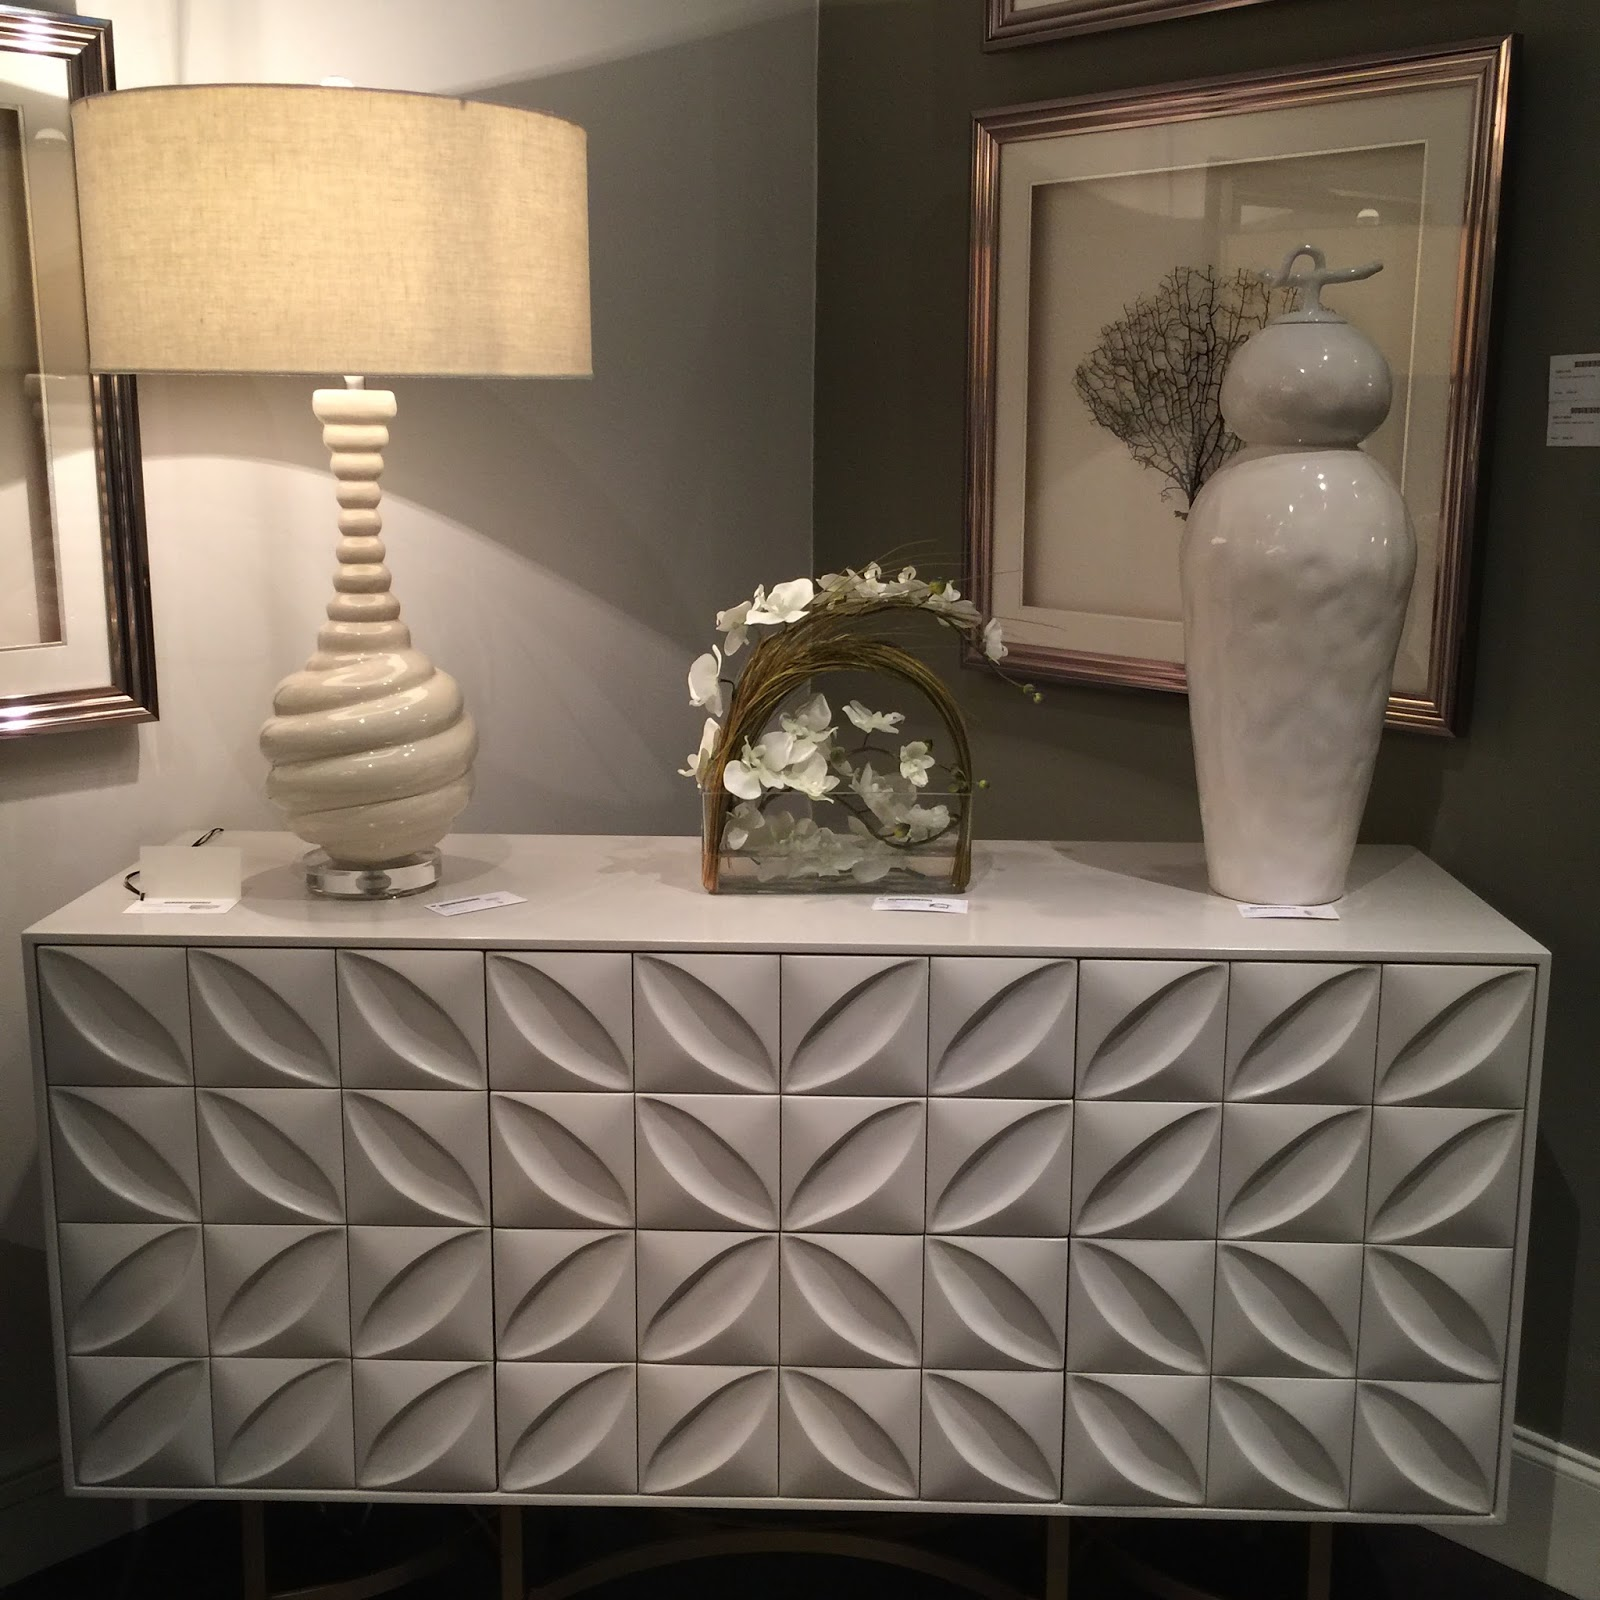 Lisa mende design john richard collection high point market lisa mende design john richard collection high point market october 2015 arubaitofo Gallery